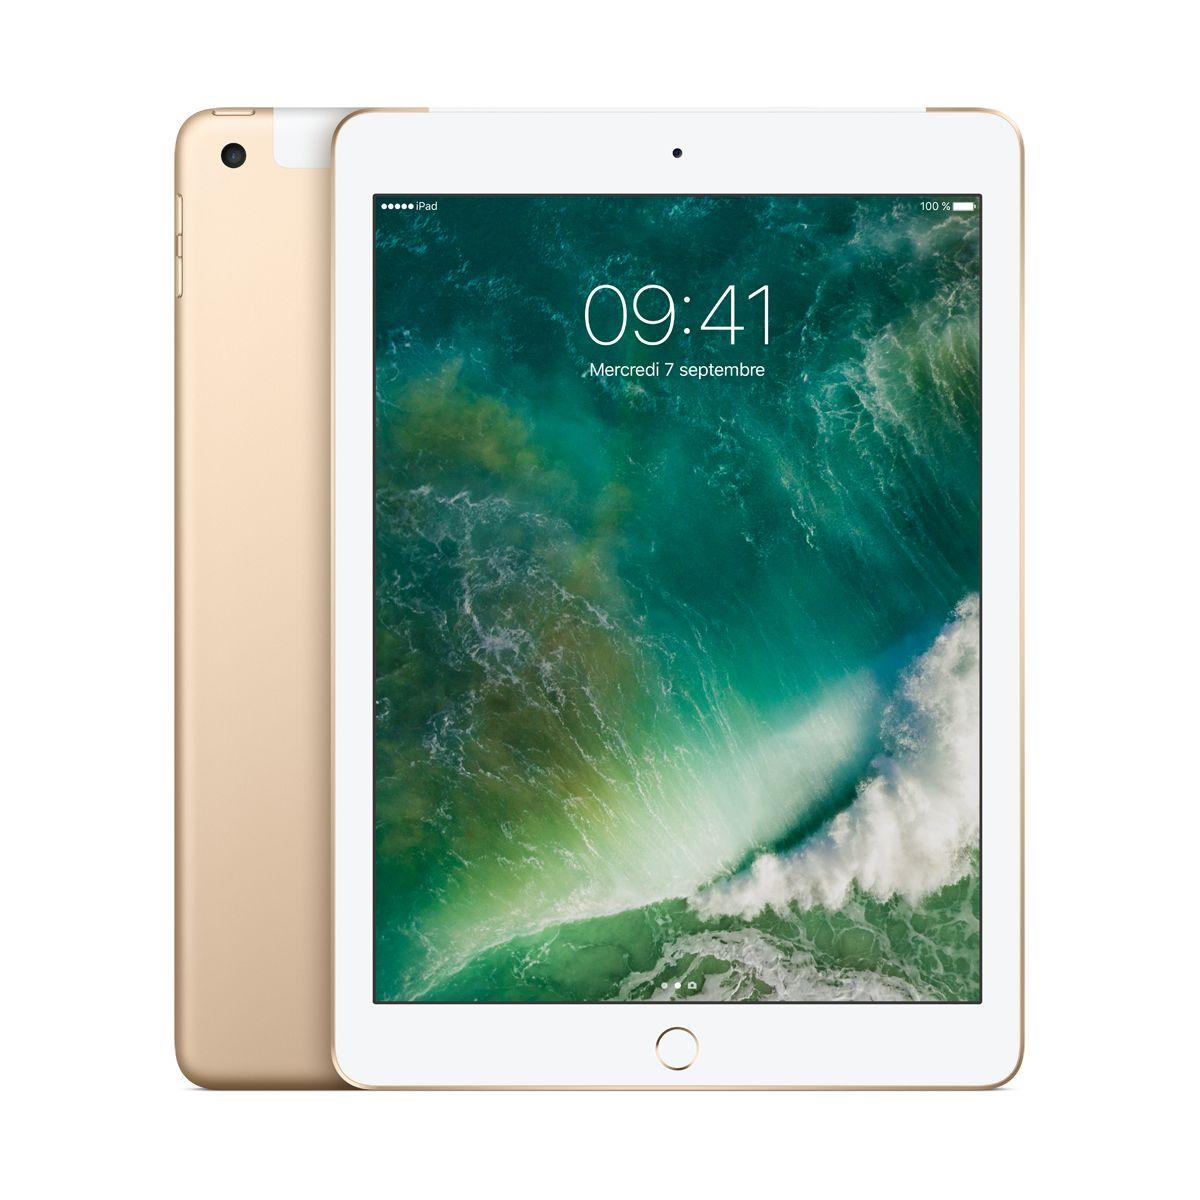 Tablette ipad new ipad 128go cel. or - livraison offerte : code livrelais (photo)